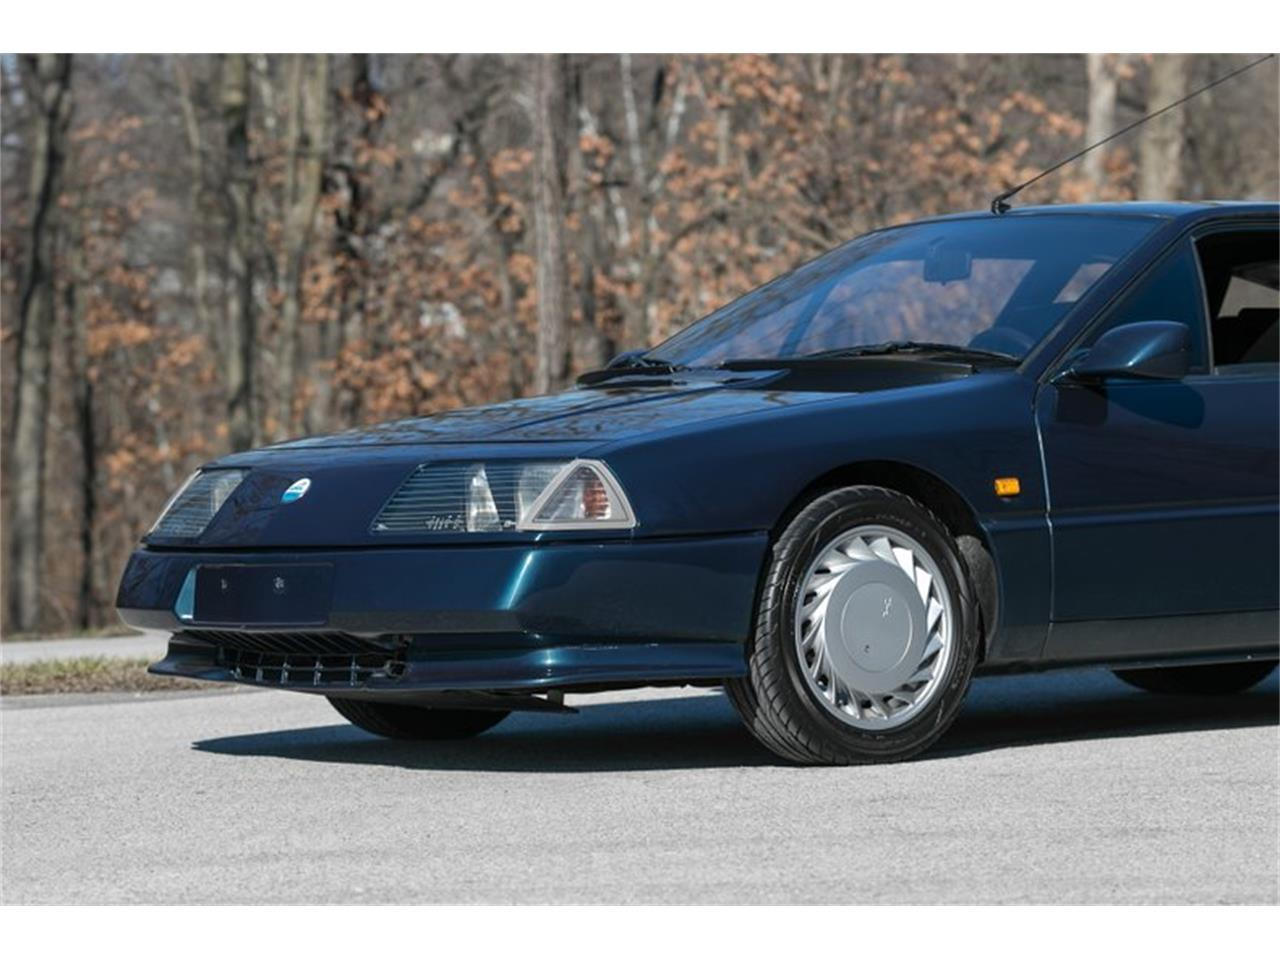 Large Picture of 1990 Alpine located in St. Charles Missouri - $27,500.00 - N1T4